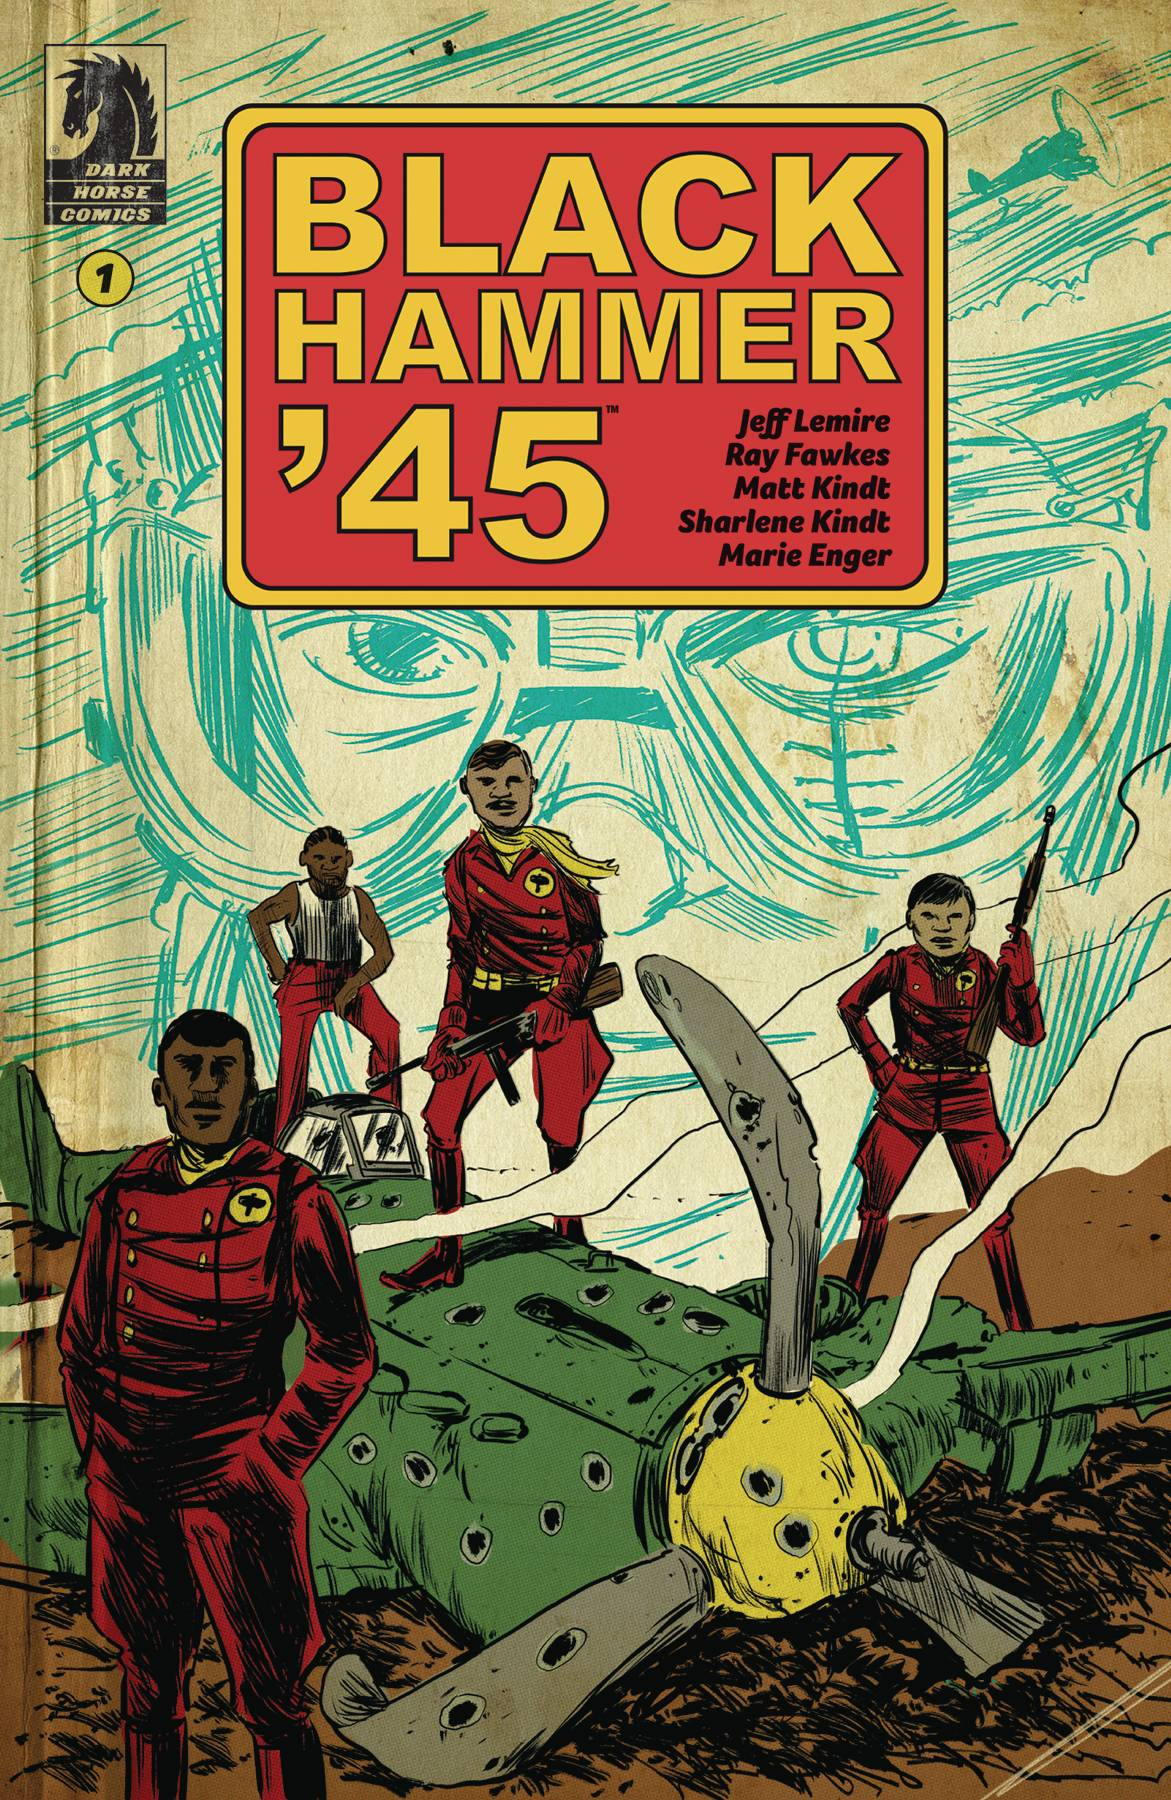 BLACK HAMMER 45 FROM WORLD OF BLACK HAMMER 1 CVR A KINDT.jpg